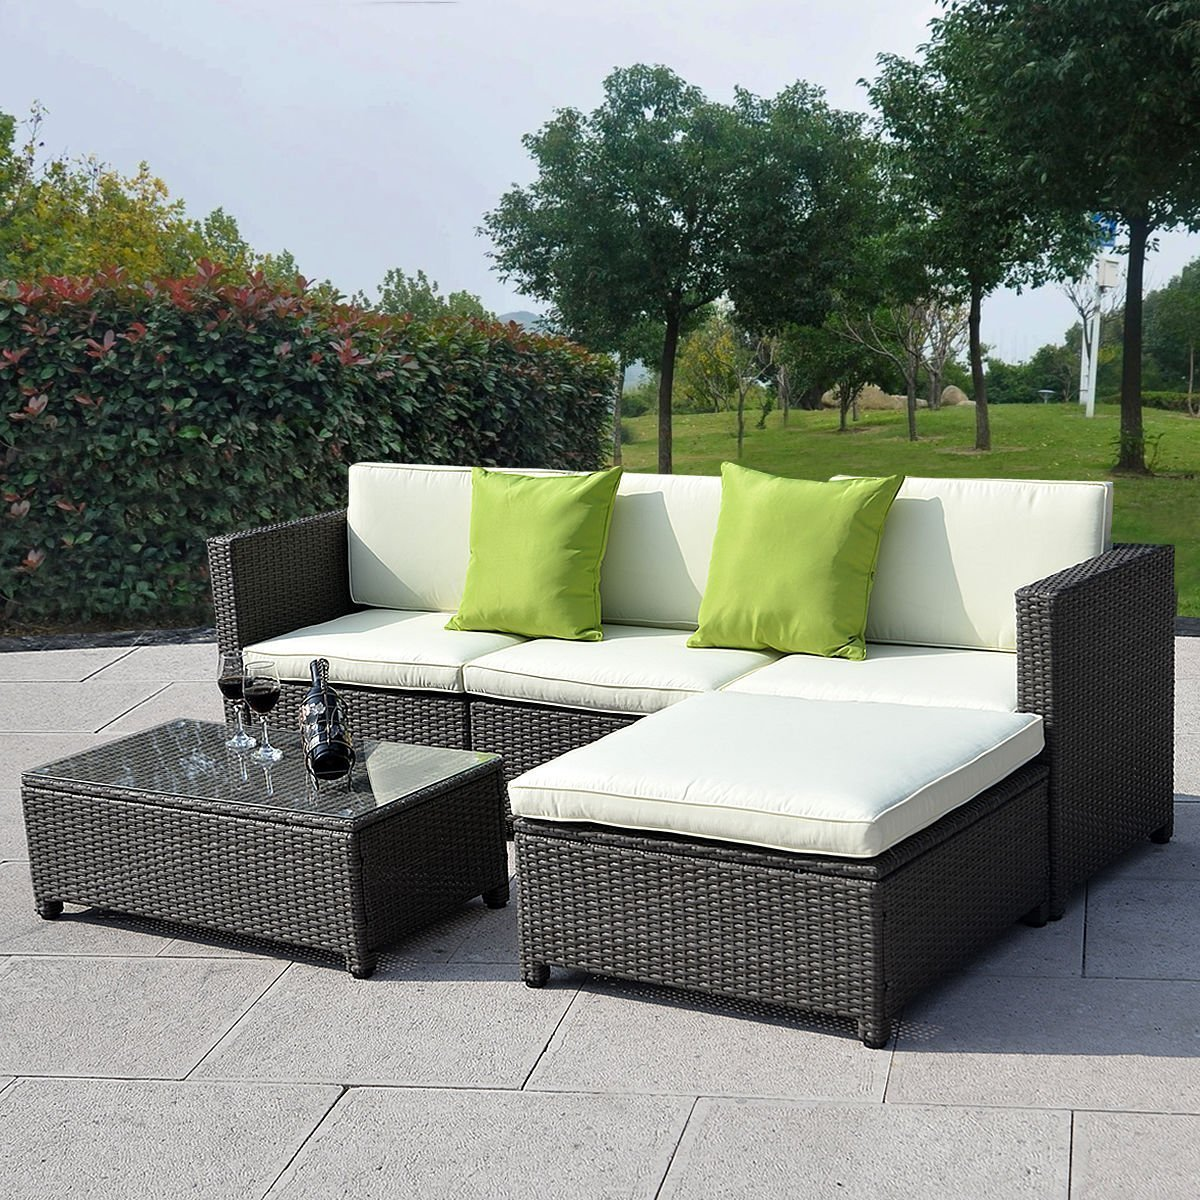 sets special inquire set furniture orders annapolis severna outdoor in store park plus custom patio available living